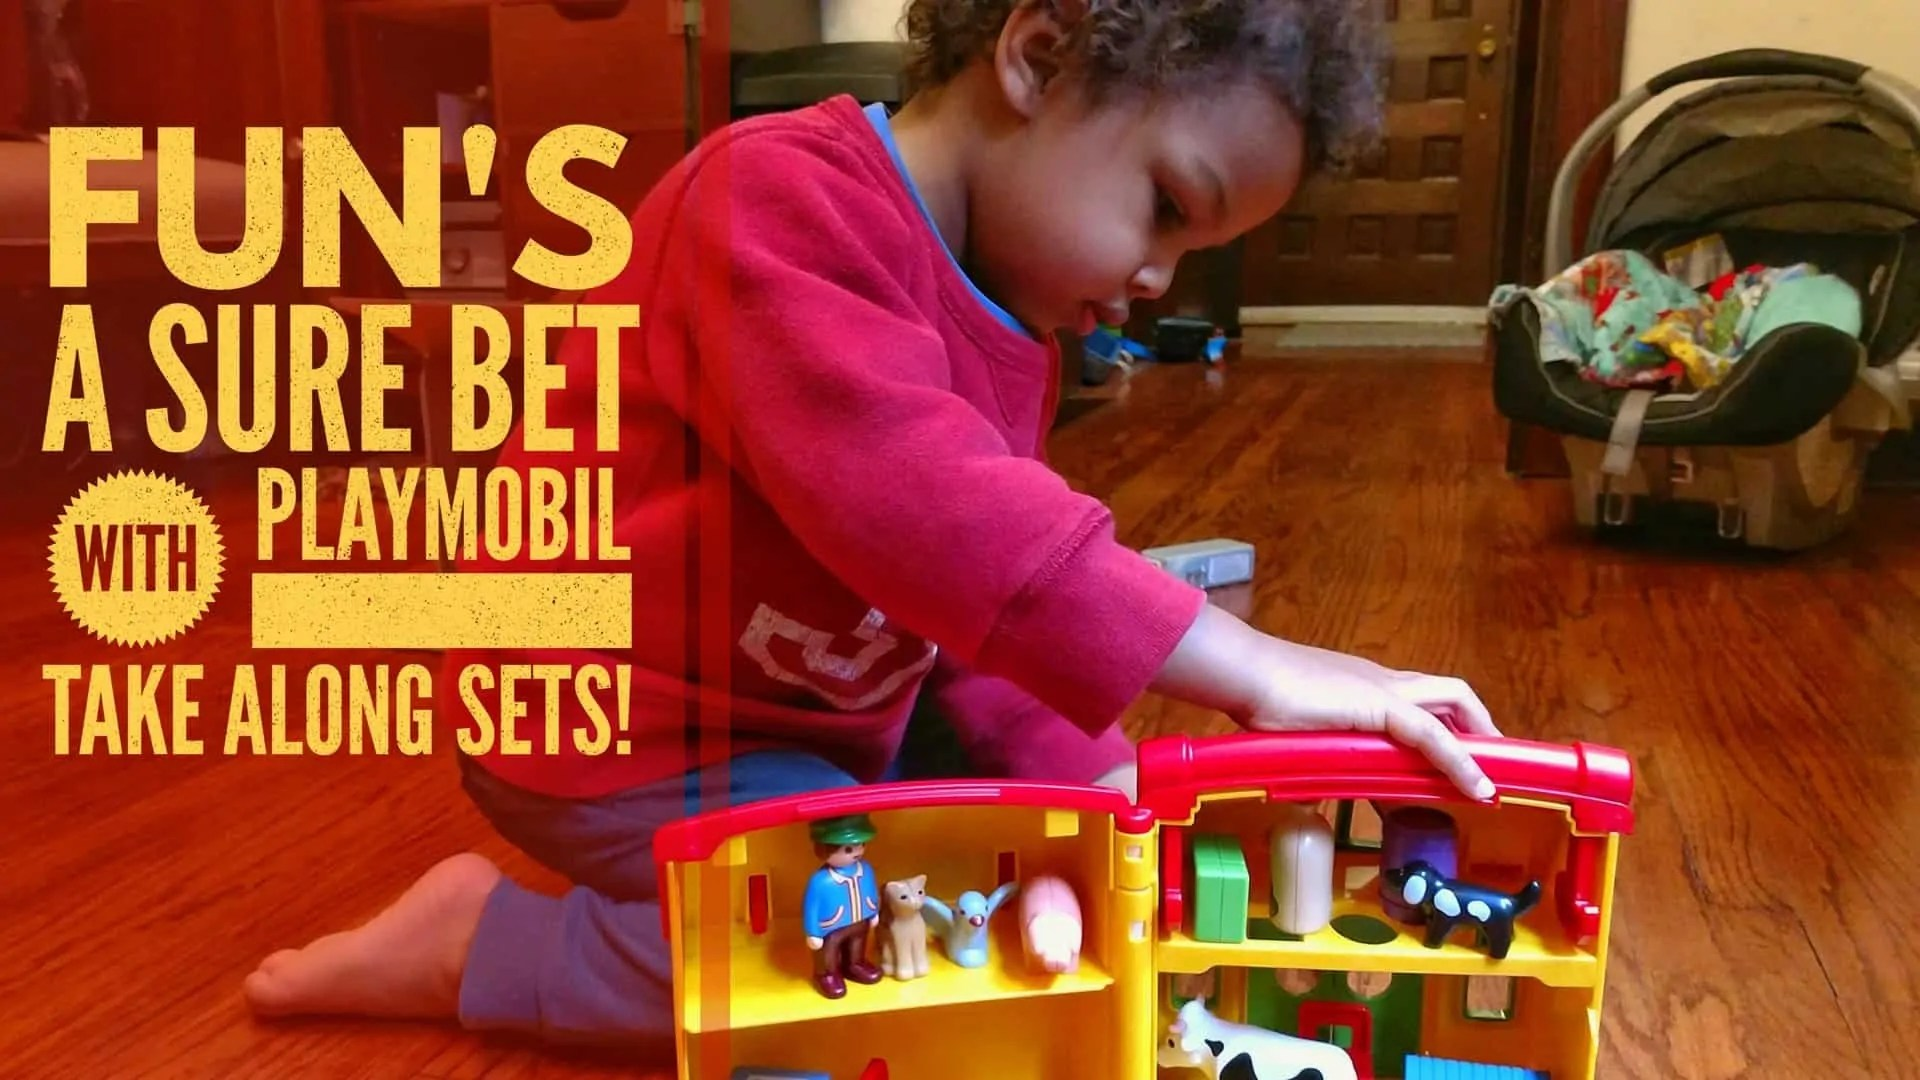 Fun's a Sure Bet with PLAYMOBIL Take Along Sets! (Featured Image)